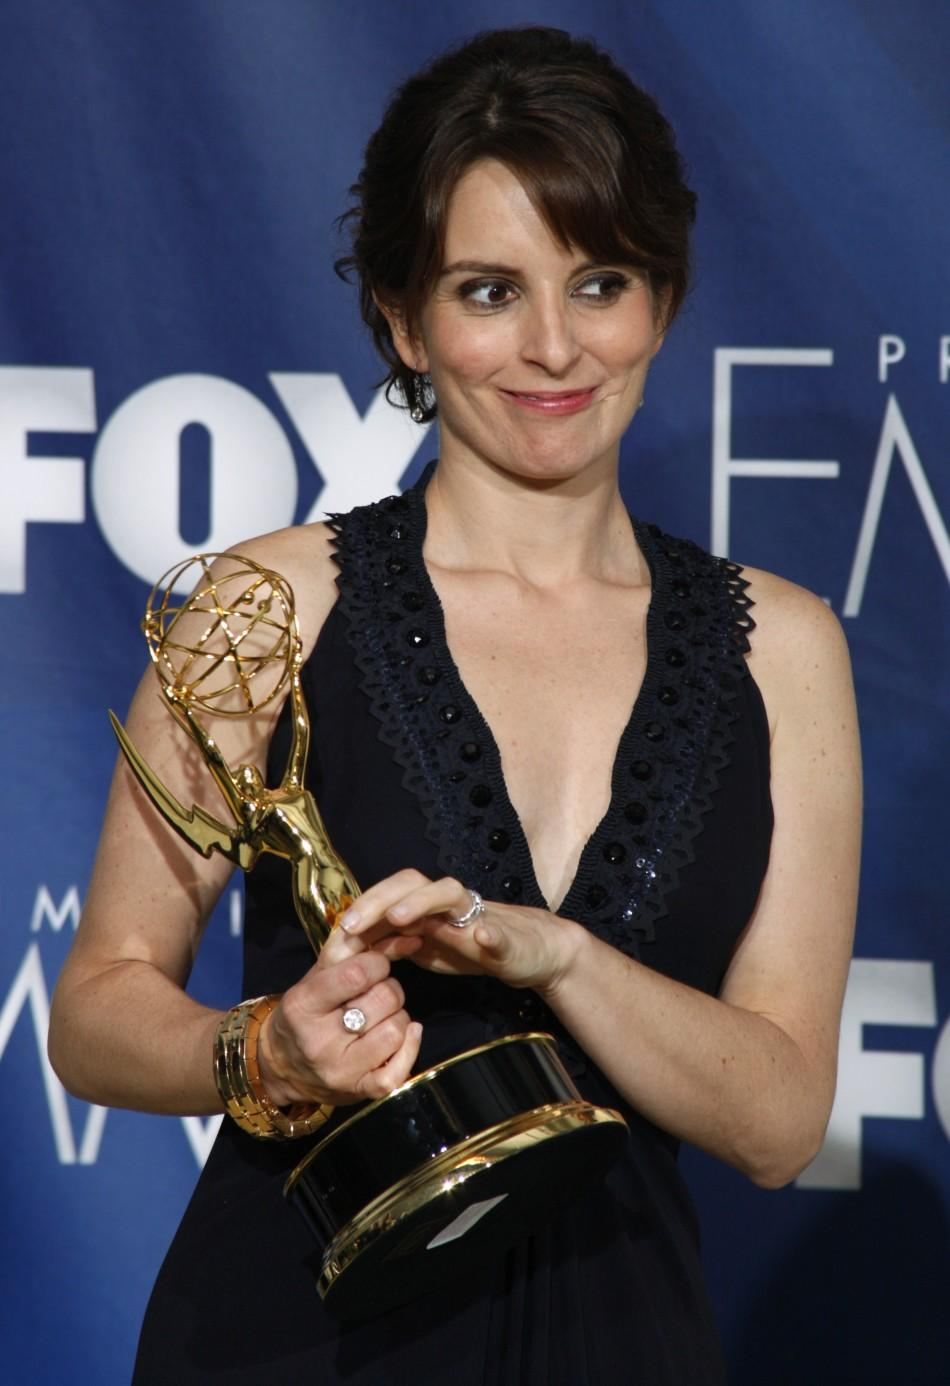 Tina Fey- $13 million